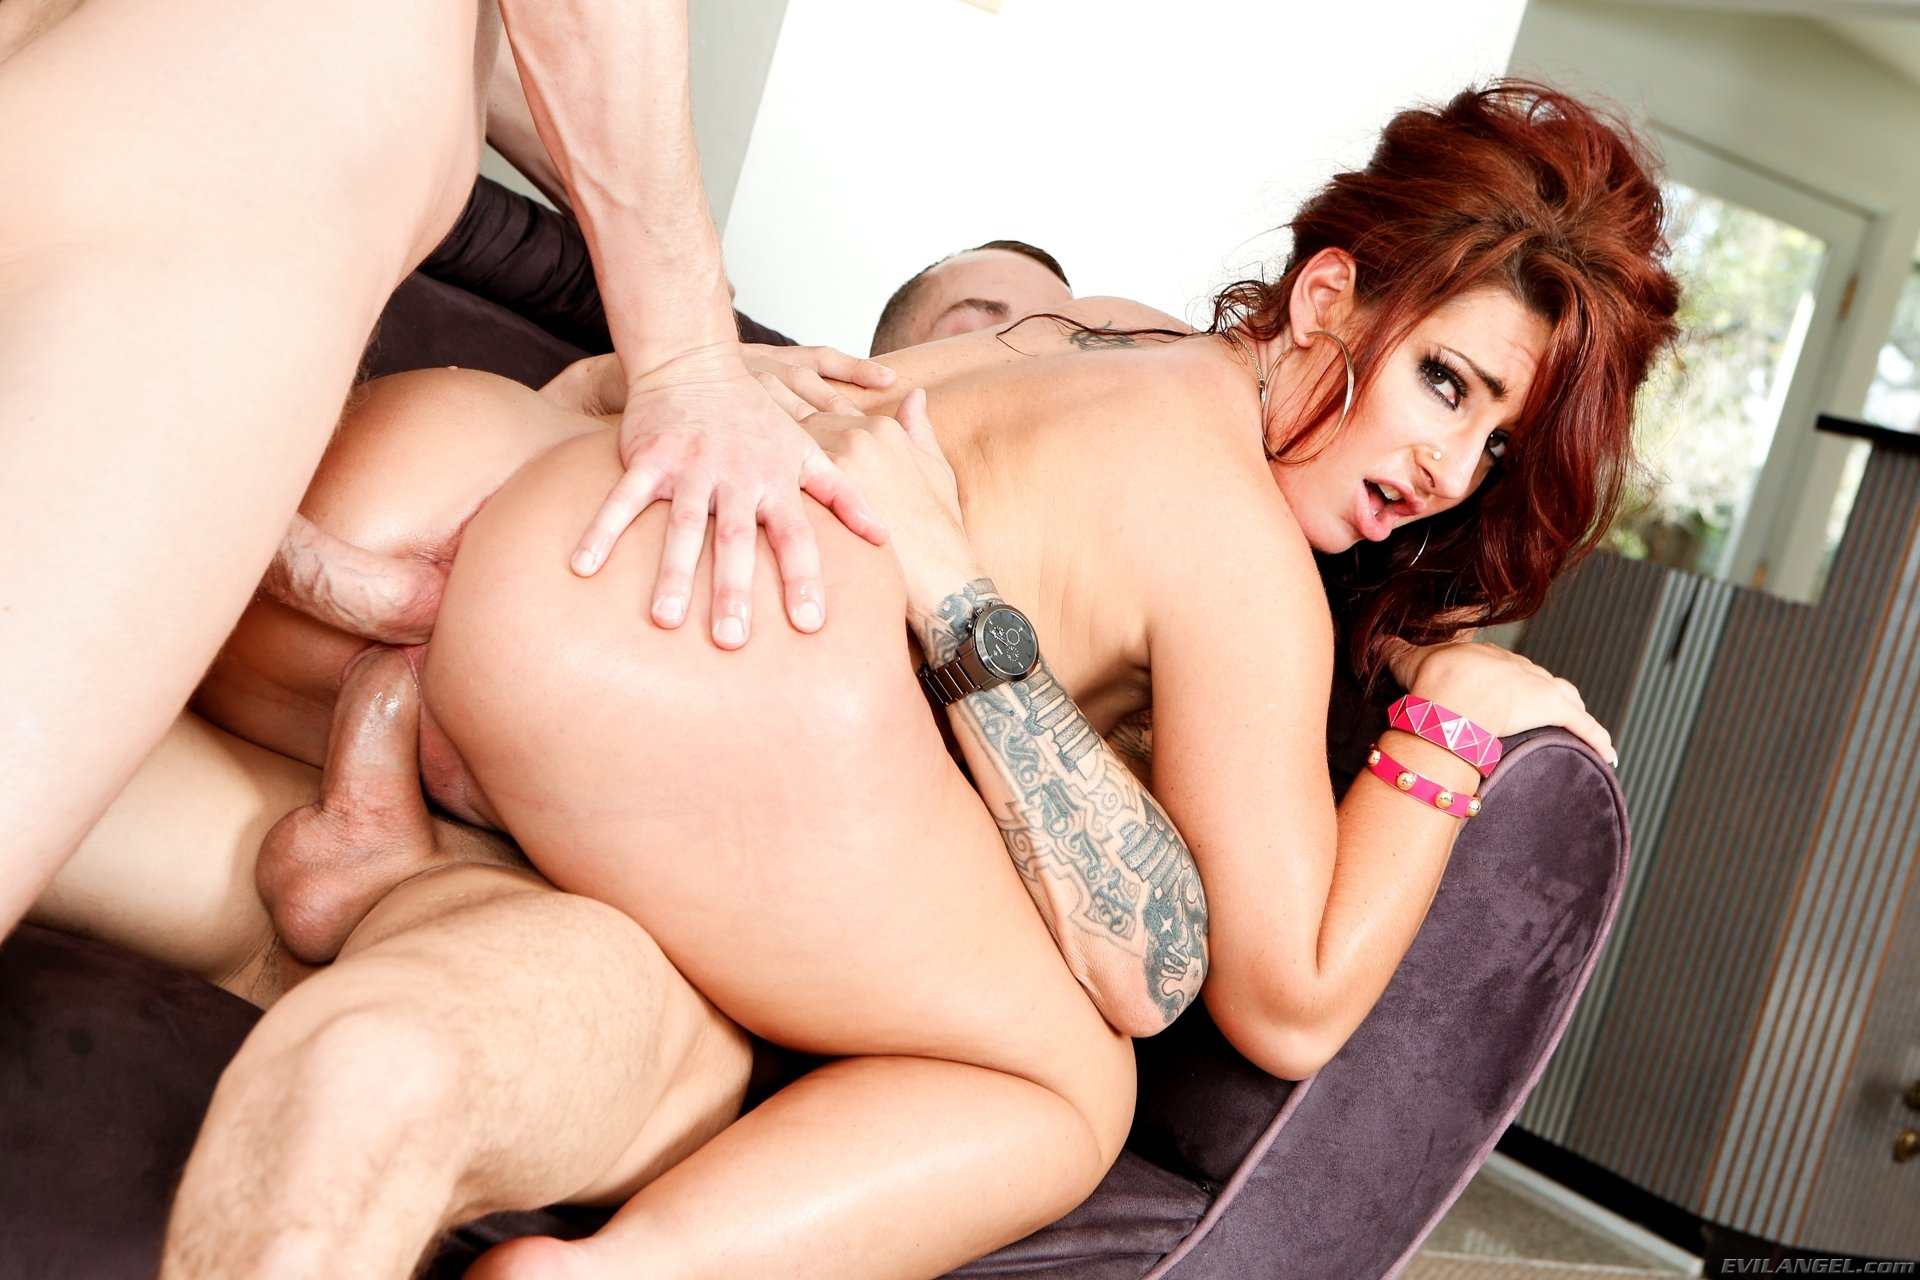 farrah abraham anal scene add photo